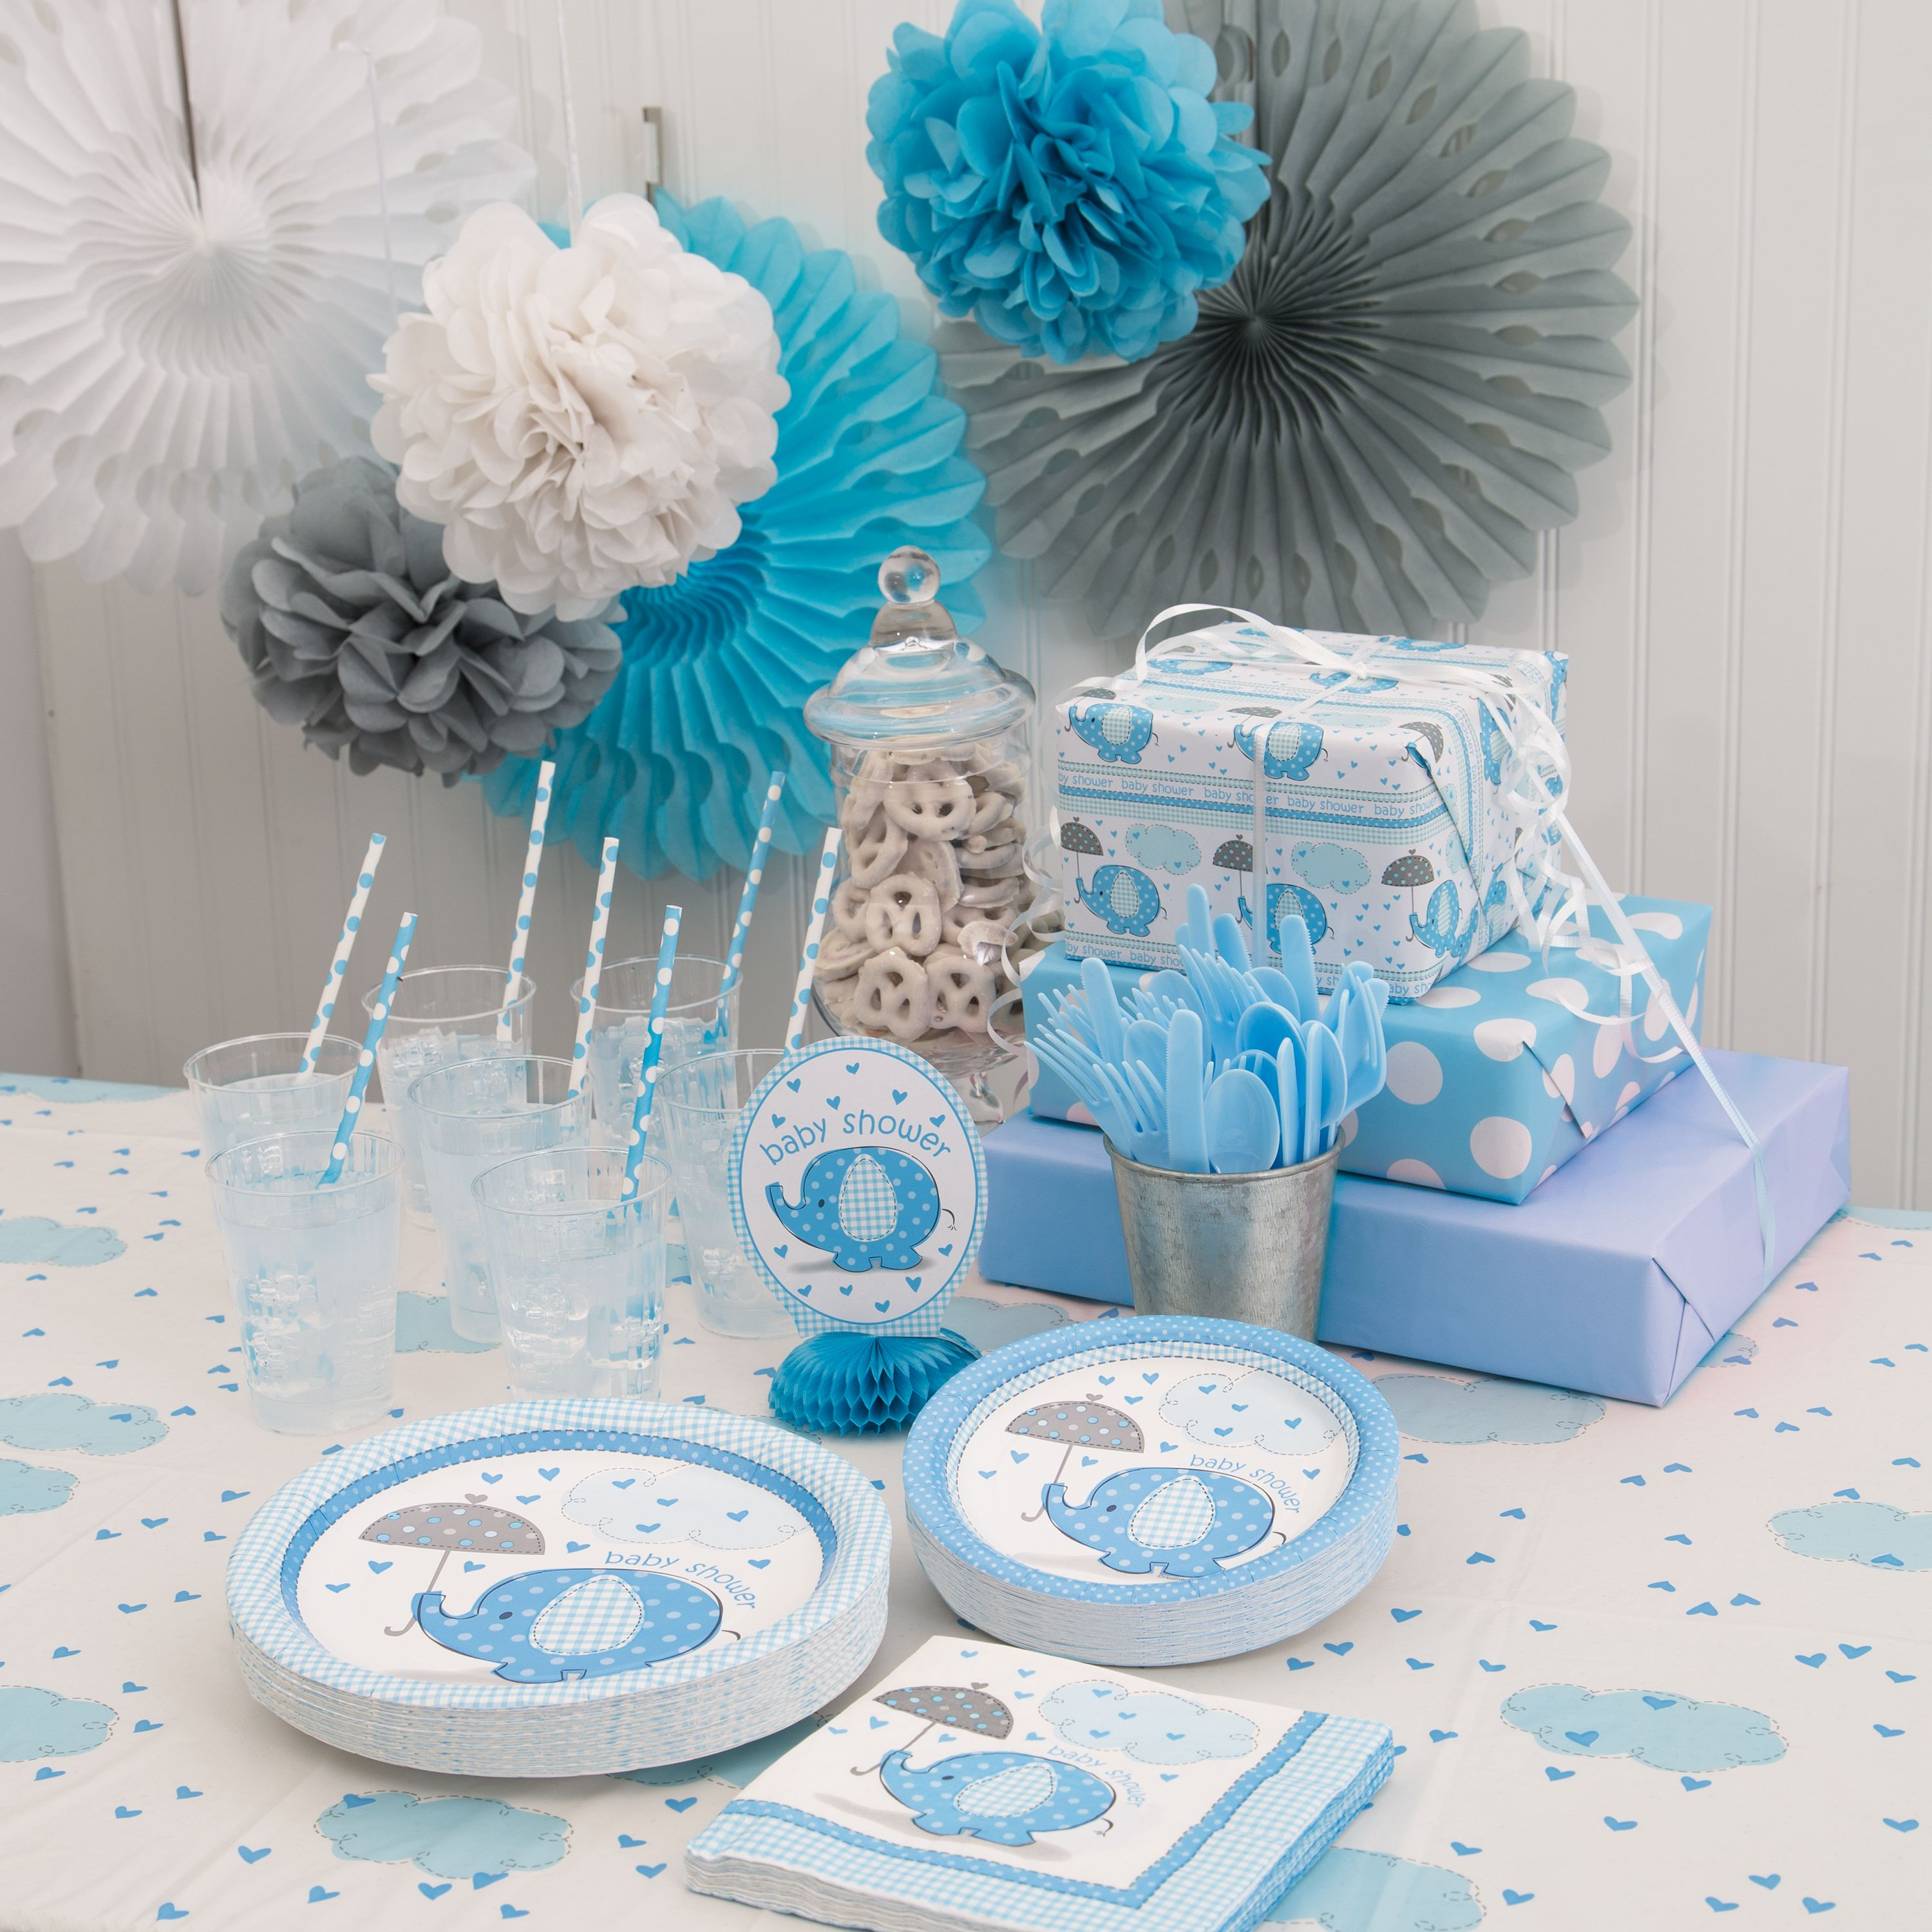 Elephant Themed Baby Shower: Blue Elephants Baby Shower Supplies